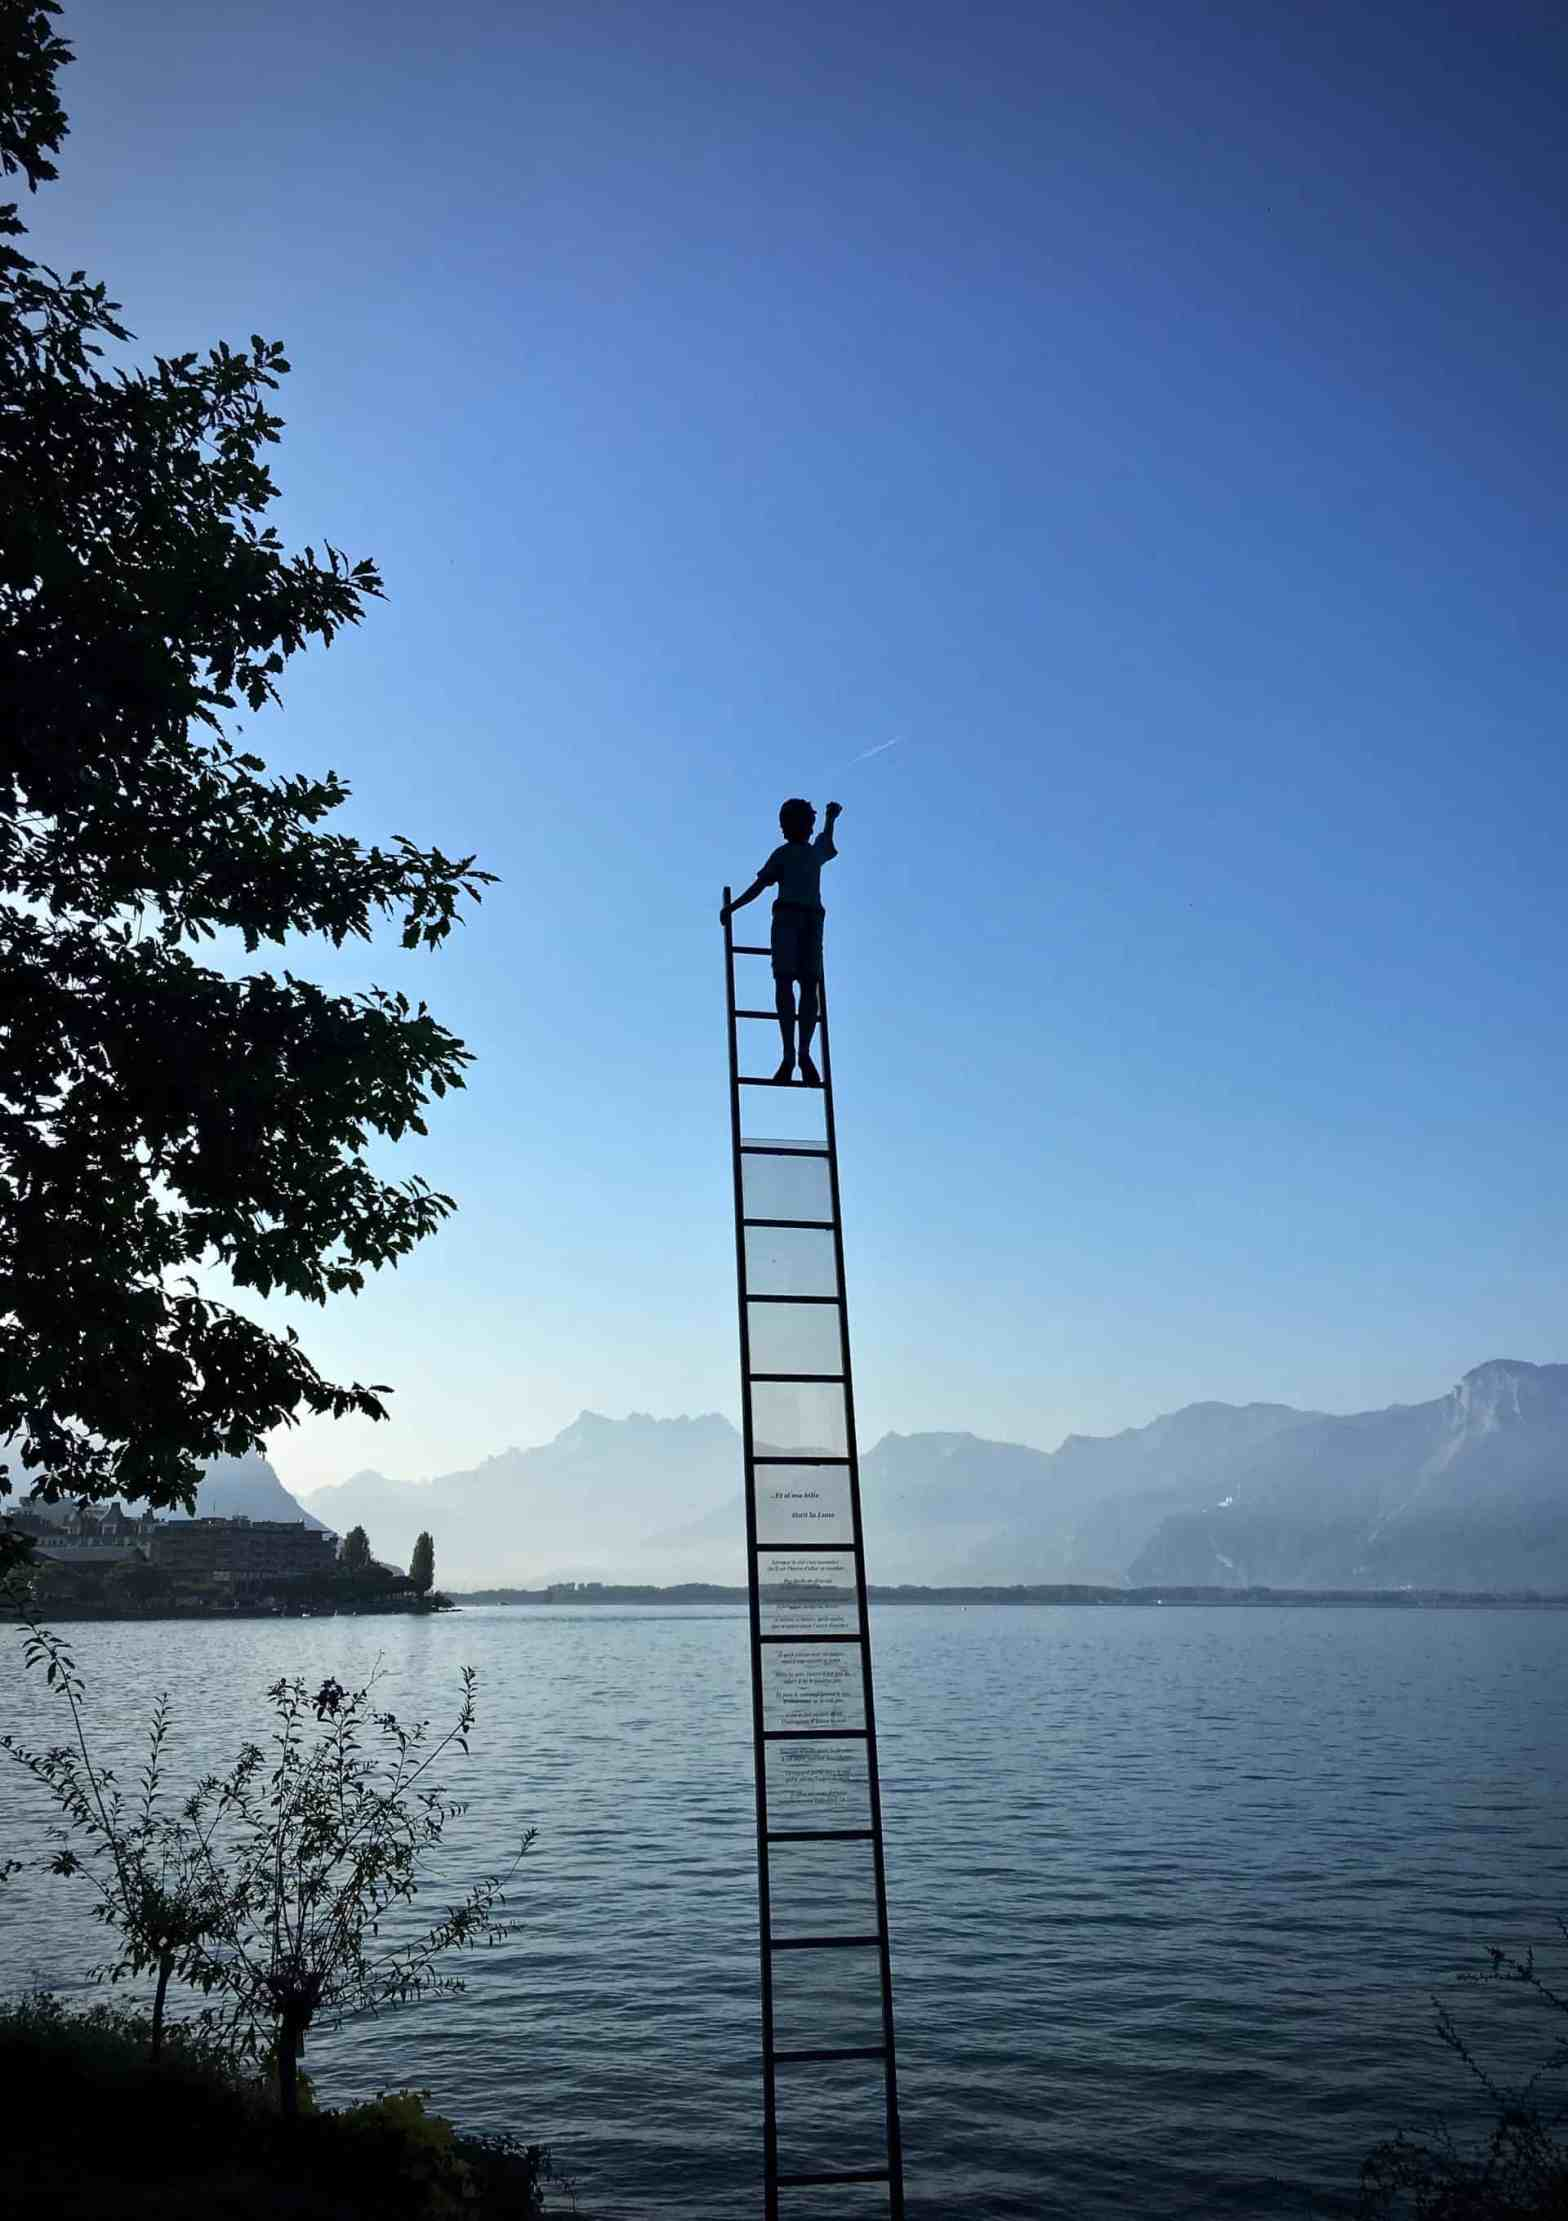 boy-trying-to-touch-the-stars-on-a-ladder-with-ambition